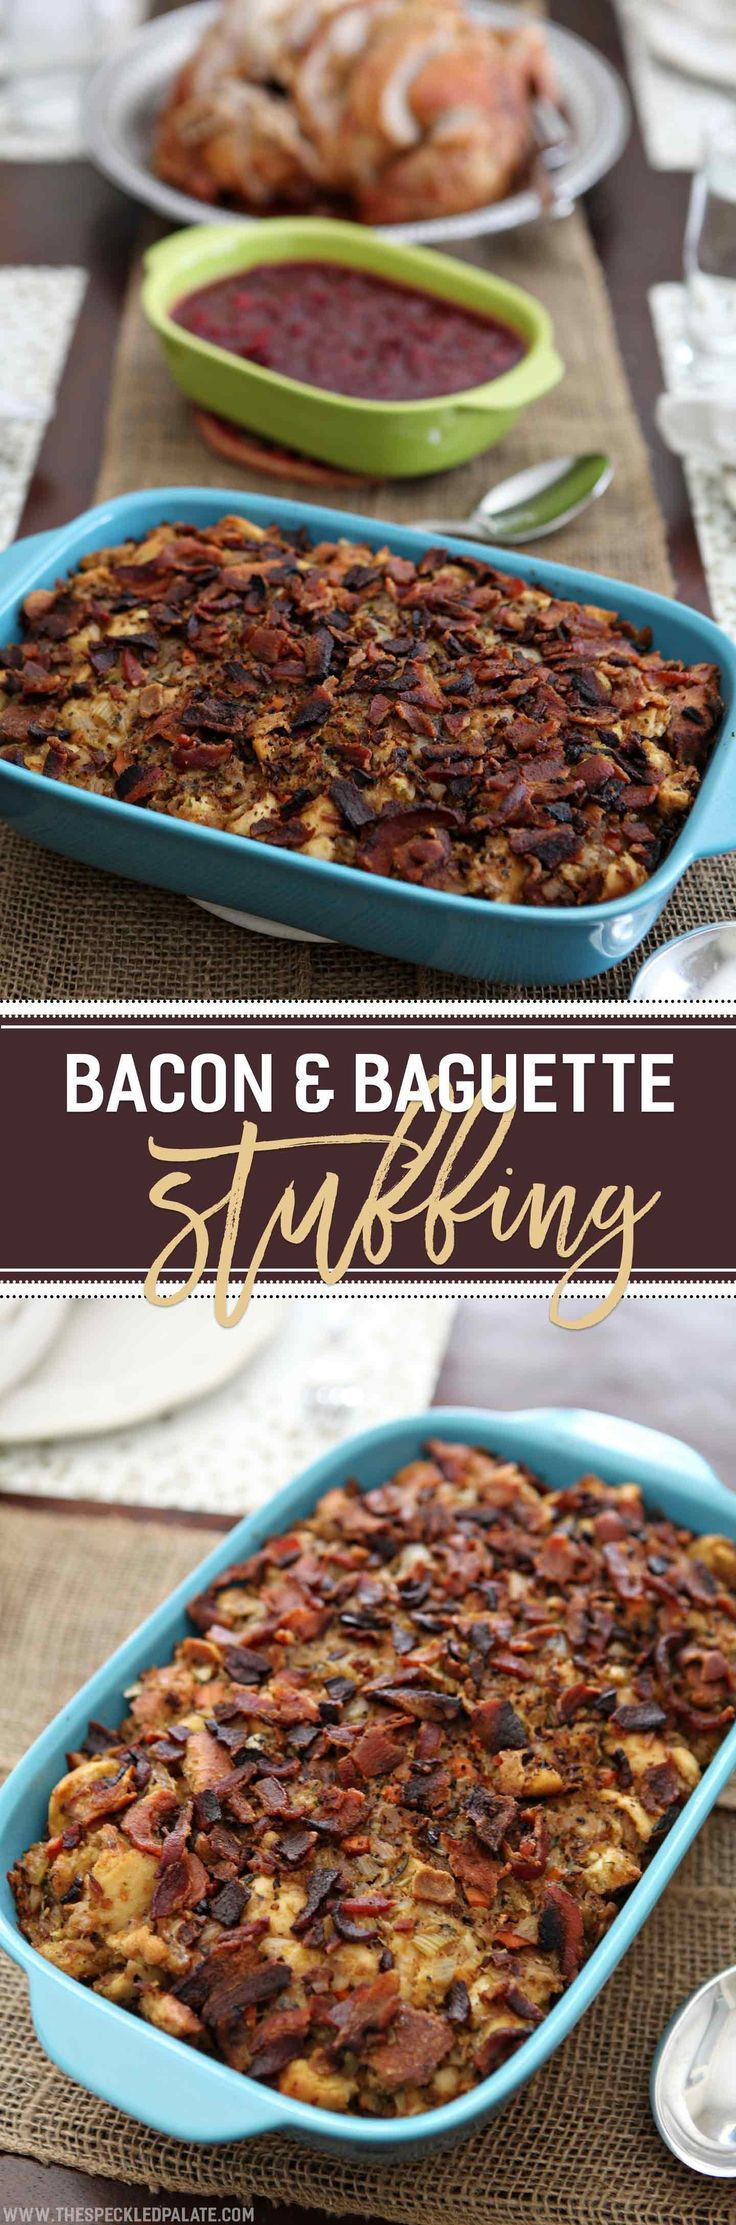 A spin on traditional French bread stuffing, Bacon and Baguette Stuffing is sure to be a hit at this year's Thanksgiving table! This decadent stuffing dish calls for day-old baguettes and bacon, as well as onions, carrots, celery, garlic, fresh herbs, cheese and broth. Bake in a separate baking dish, topped with bacon crumbles, until the stuffing is cooked. Serve with turkey and other traditional Thanksgiving side dishes for a delicious meal!